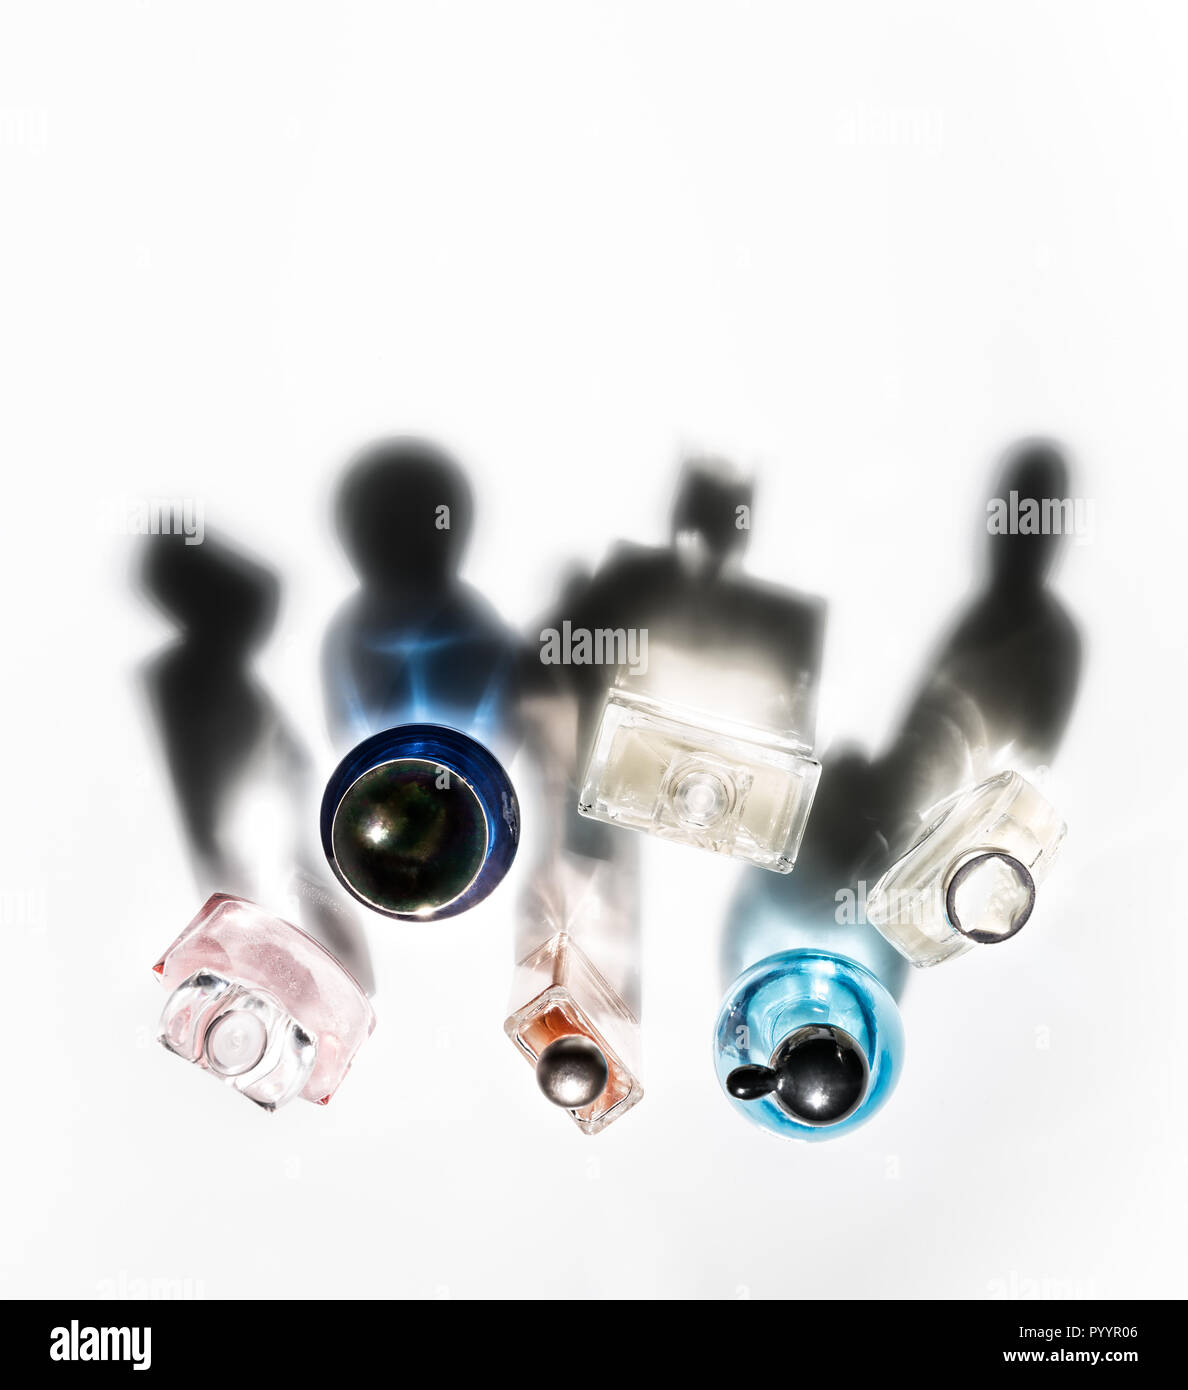 Shadows of perfume bottles in the form of communicating various human characters. - Stock Image